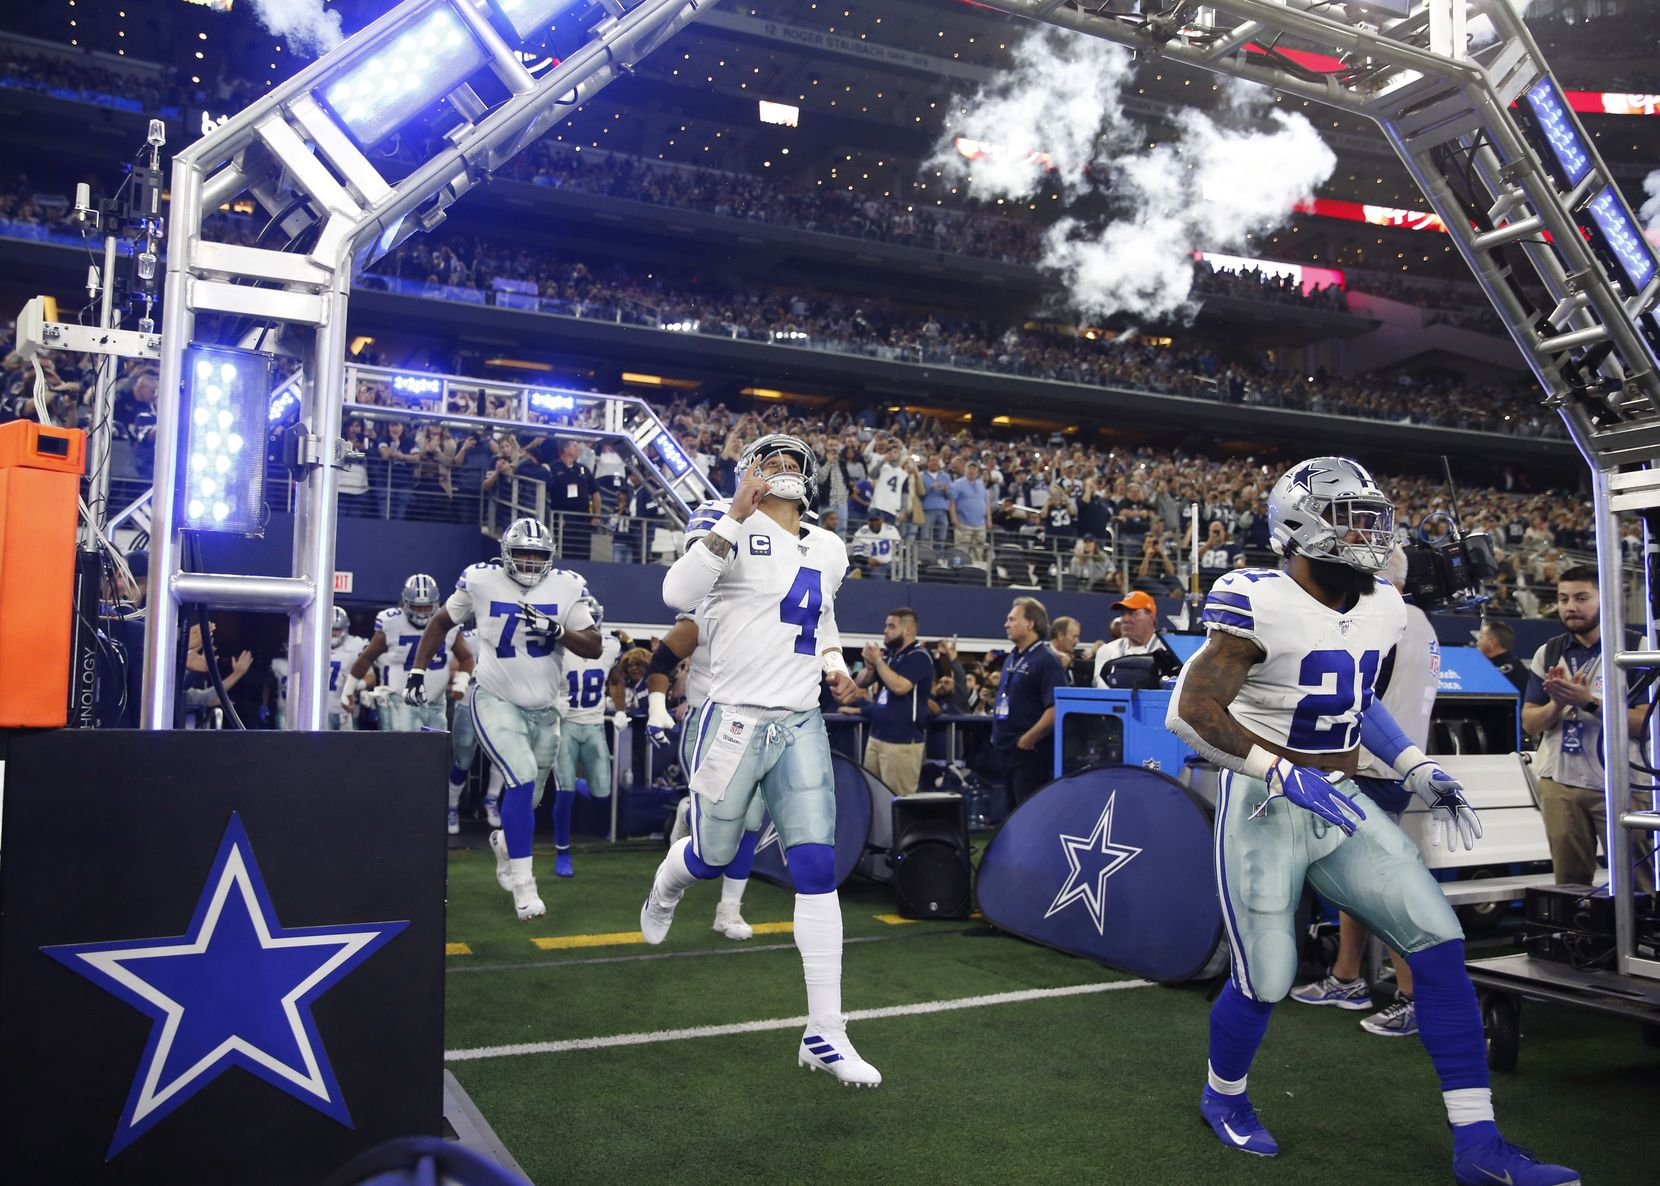 Dallas Cowboys quarterback Dak Prescott (4), Dallas Cowboys running back Ezekiel Elliott (21) and players take the field as they are introduced before playing against the Buffalo Bills at AT&T Stadium in Arlington, Texas on Thursday, November 28, 2019. (Vernon Bryant/The Dallas Morning News)